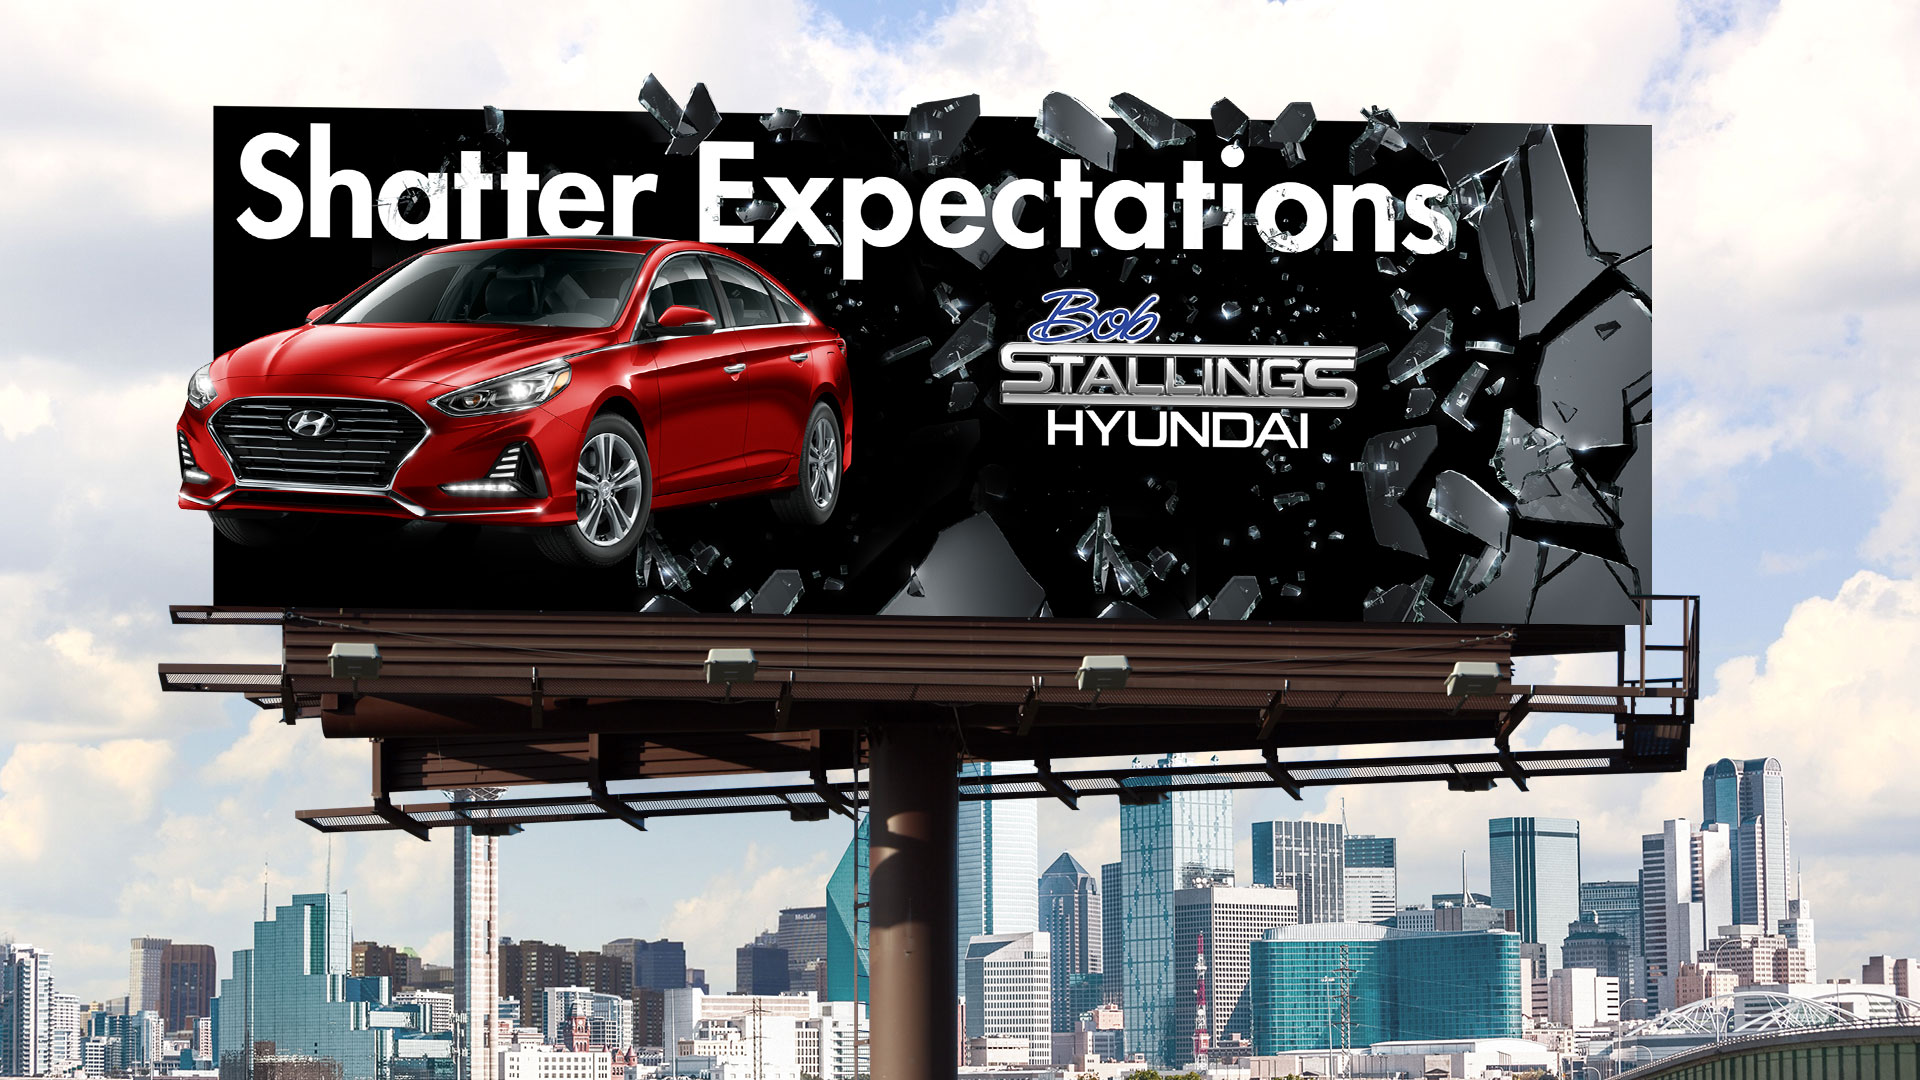 Billboard: Bob Stallings Hyundai Shatter Expectations